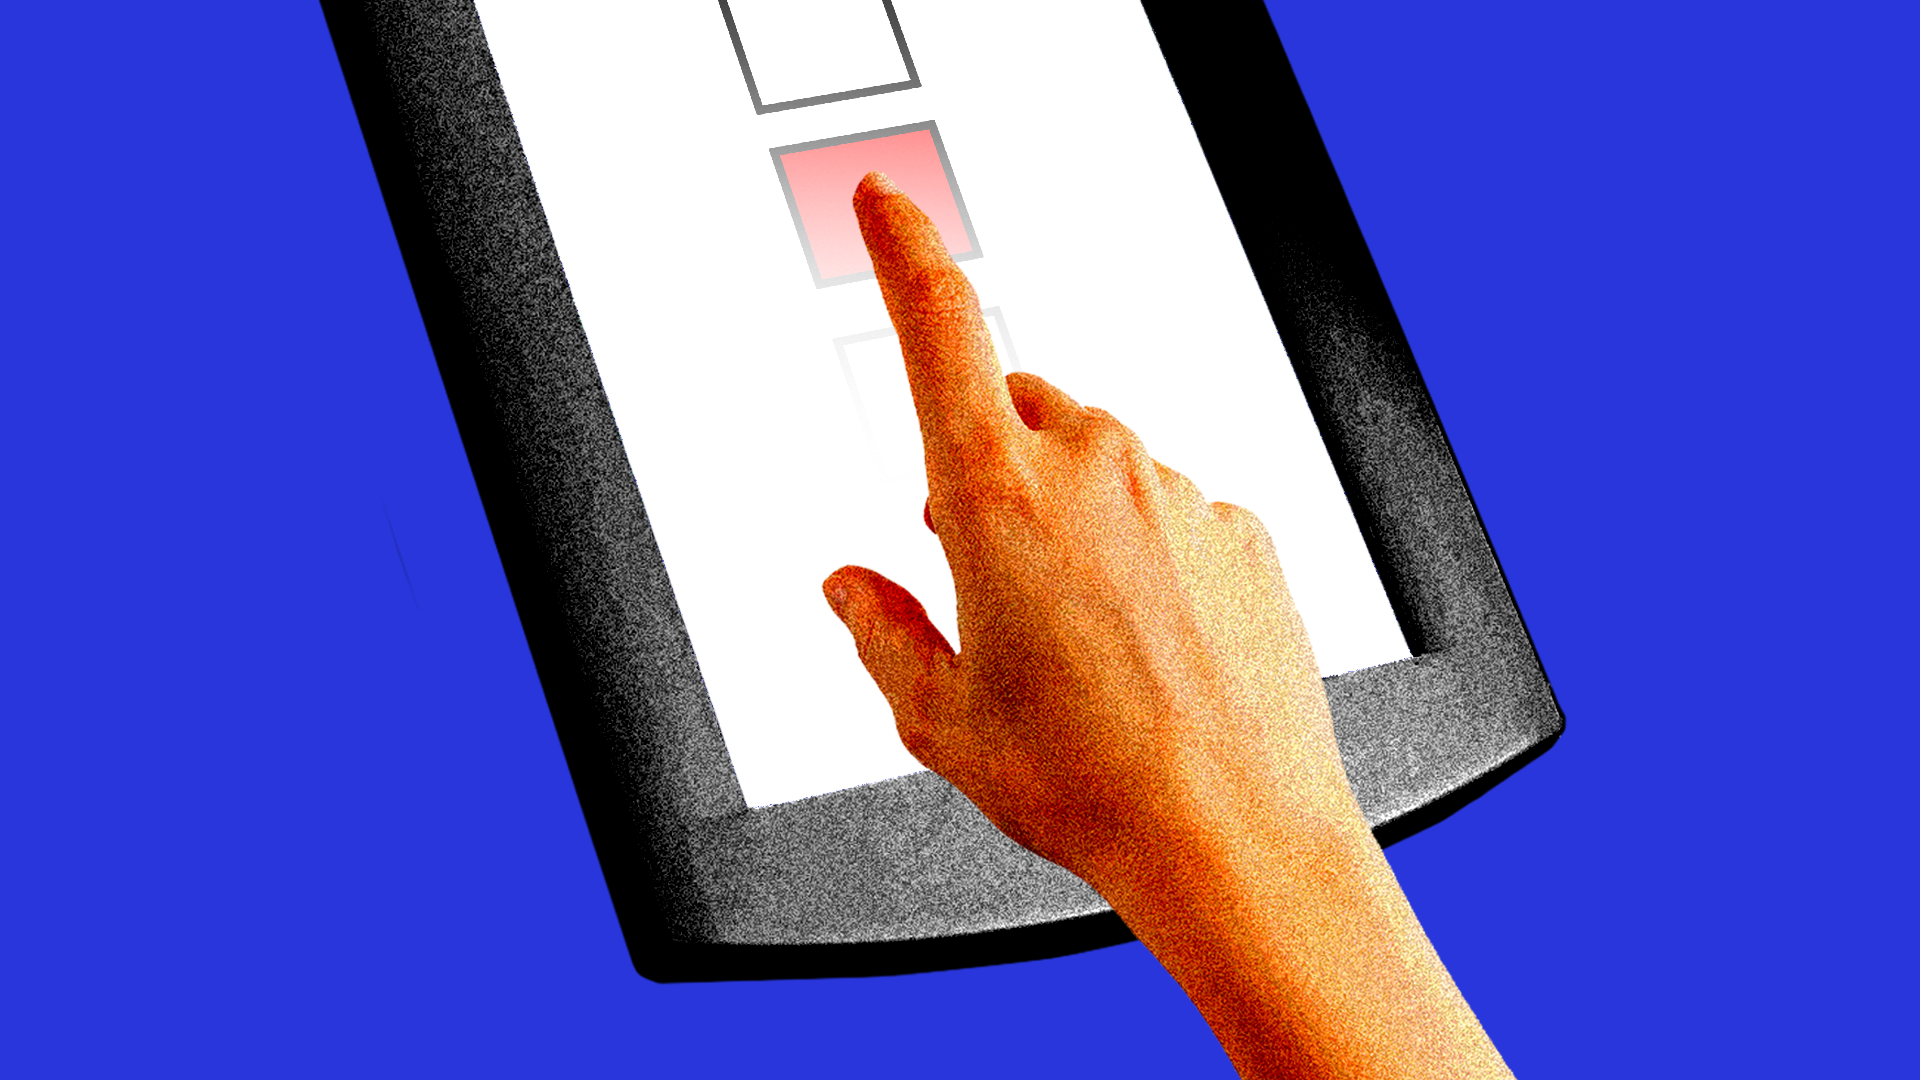 A hand touching an electronic voting touchscreen